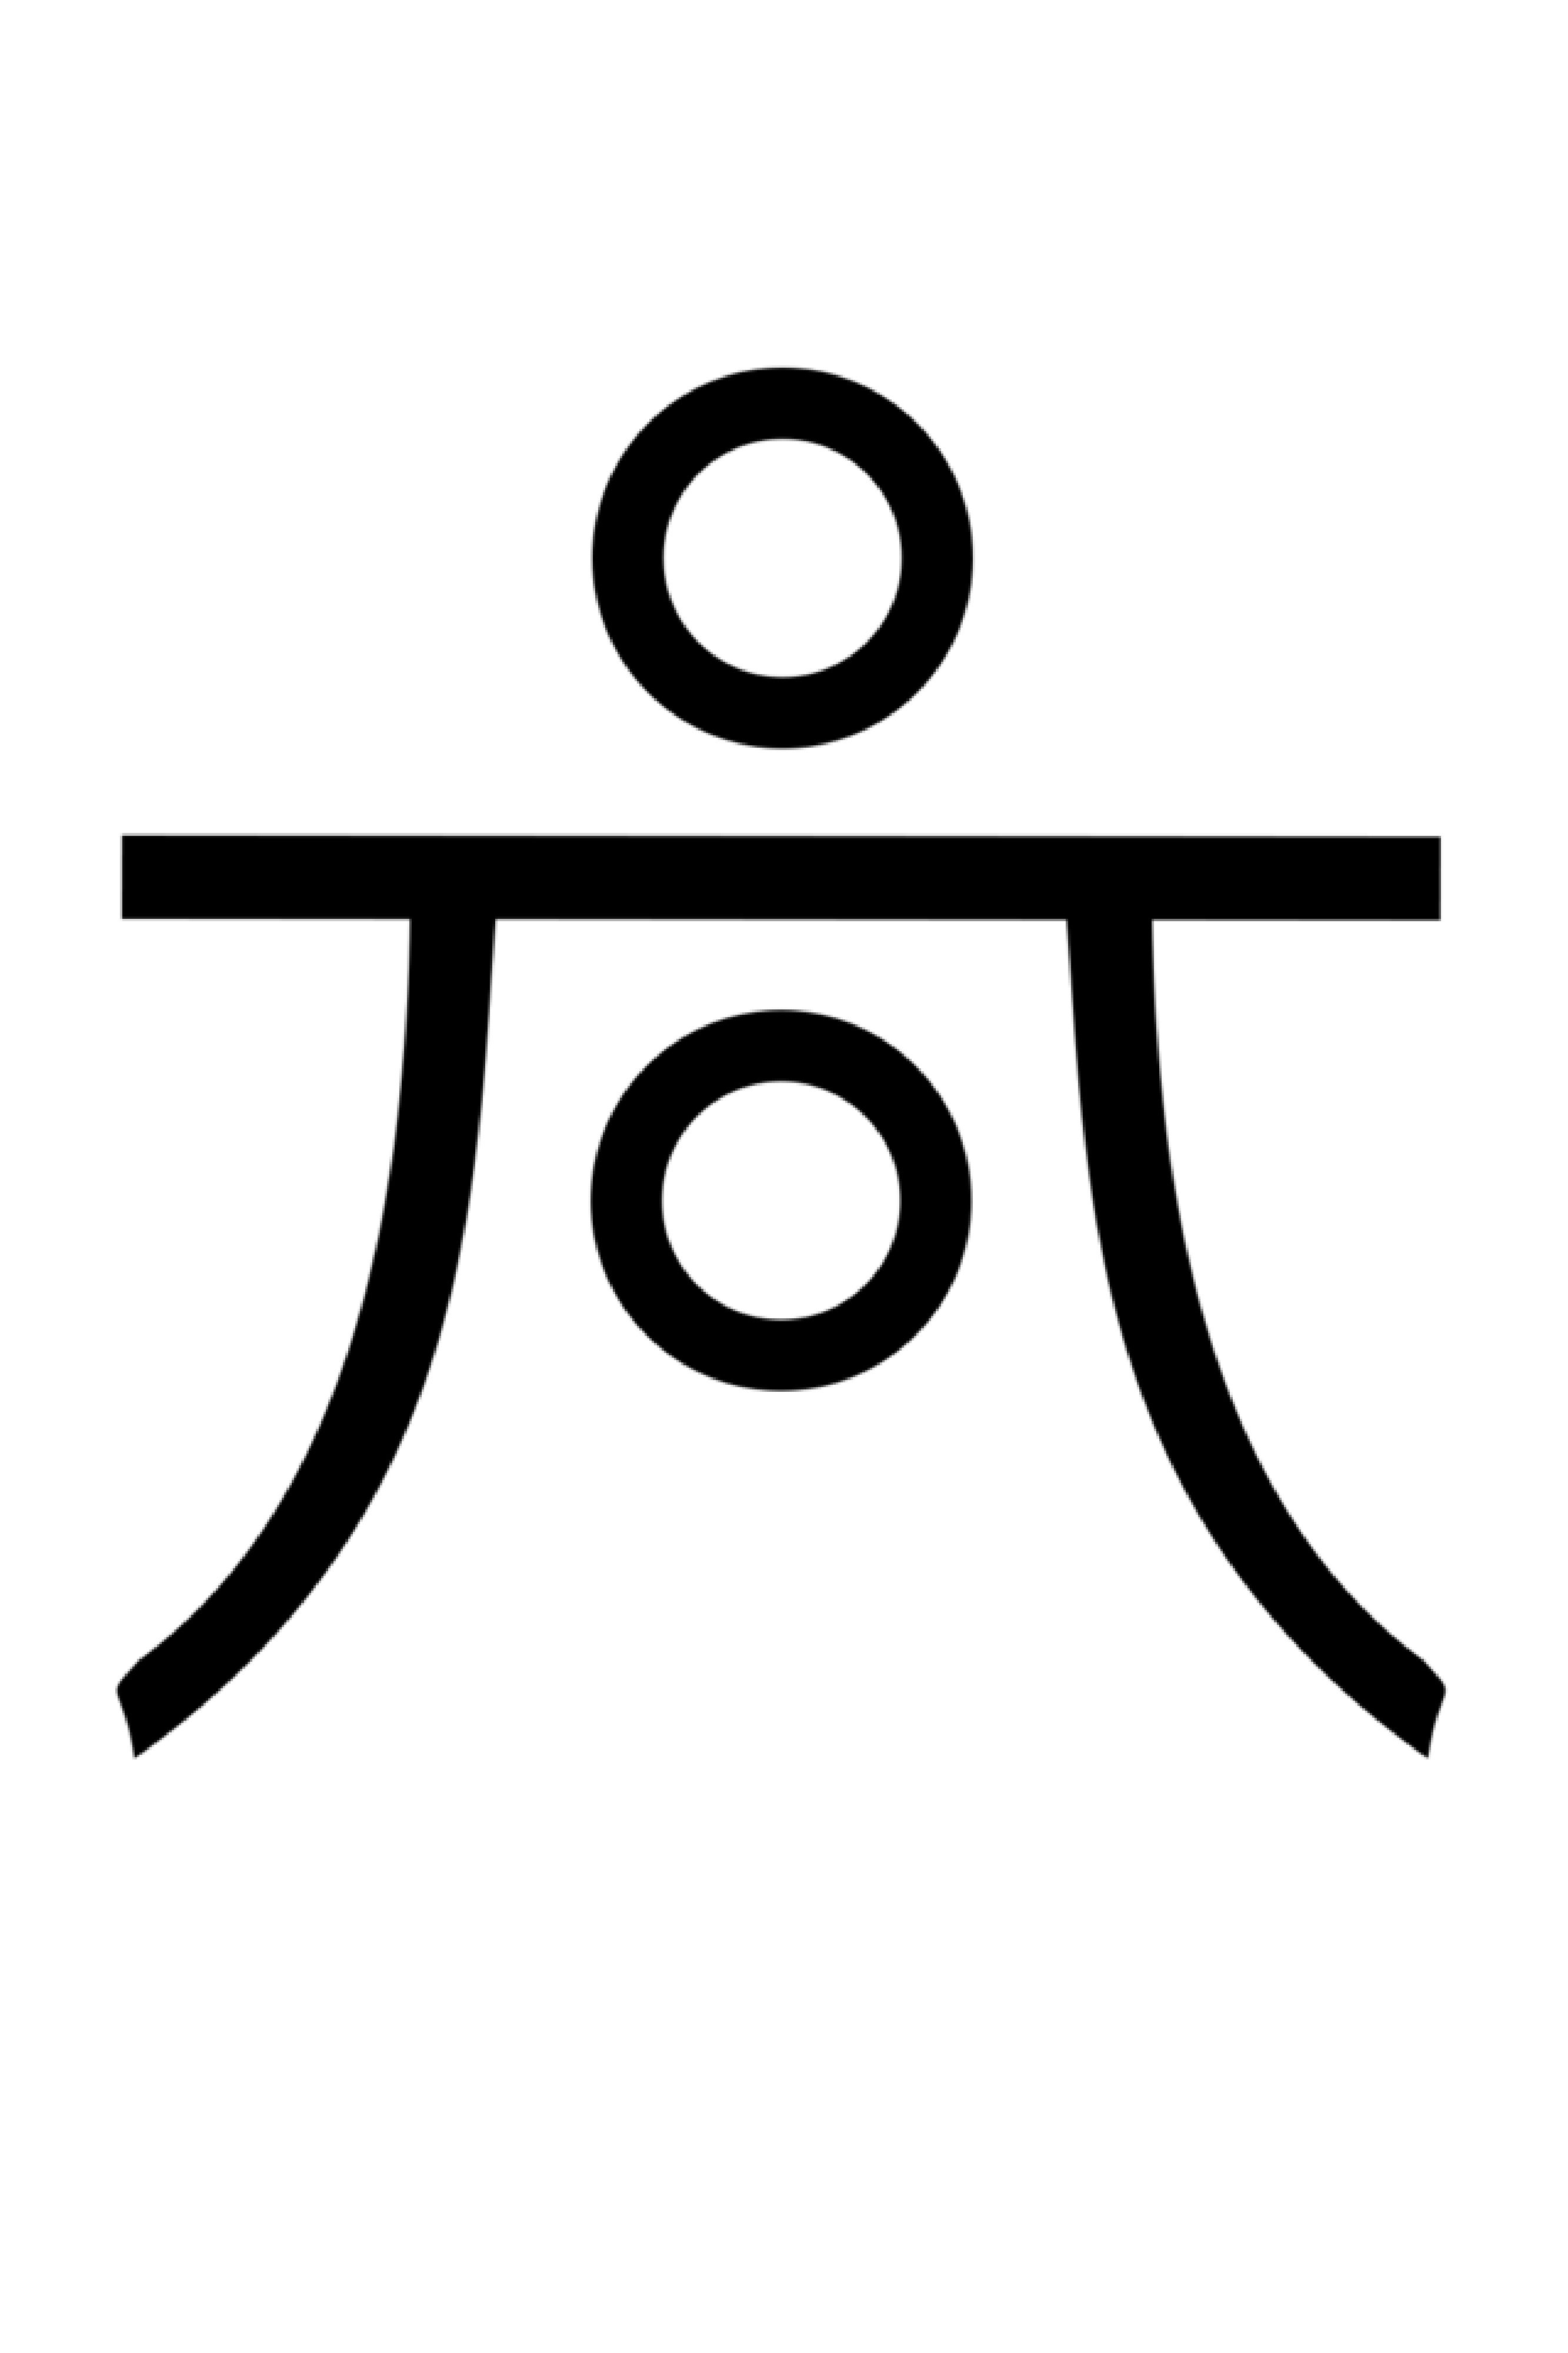 Haumea Astrological Symbol Depicts A Combination Of The